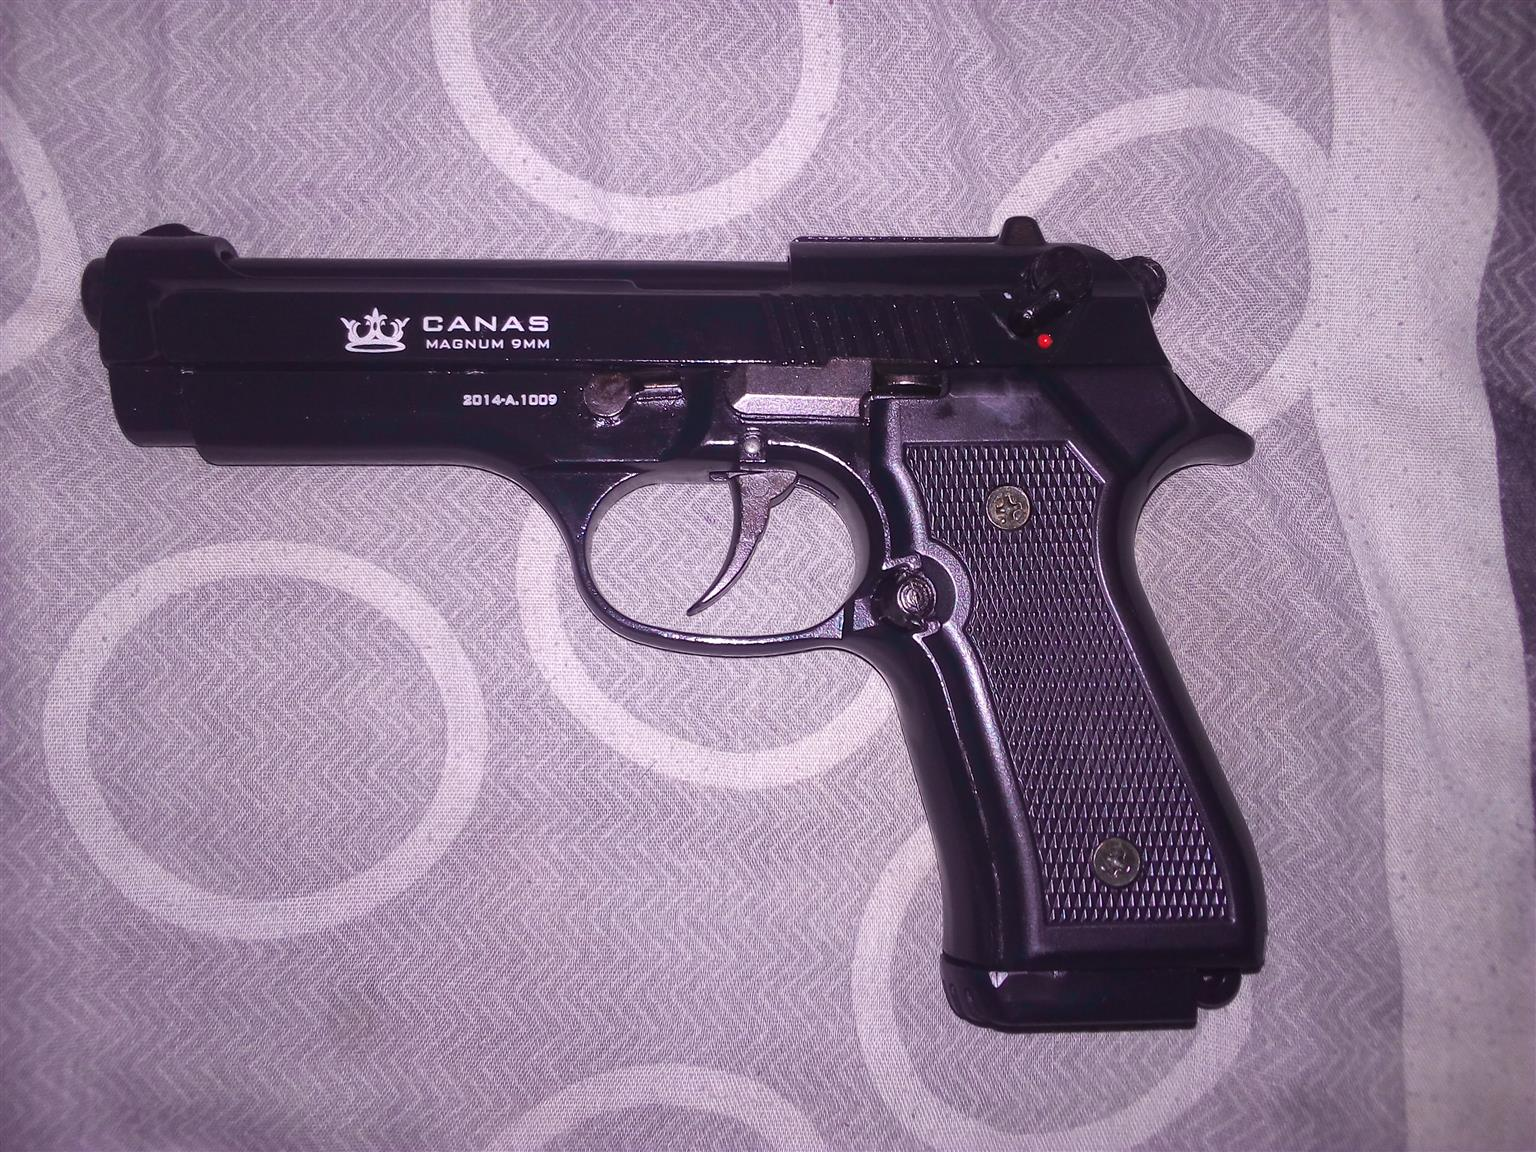 Self defense Canas pepper pistol (not real)